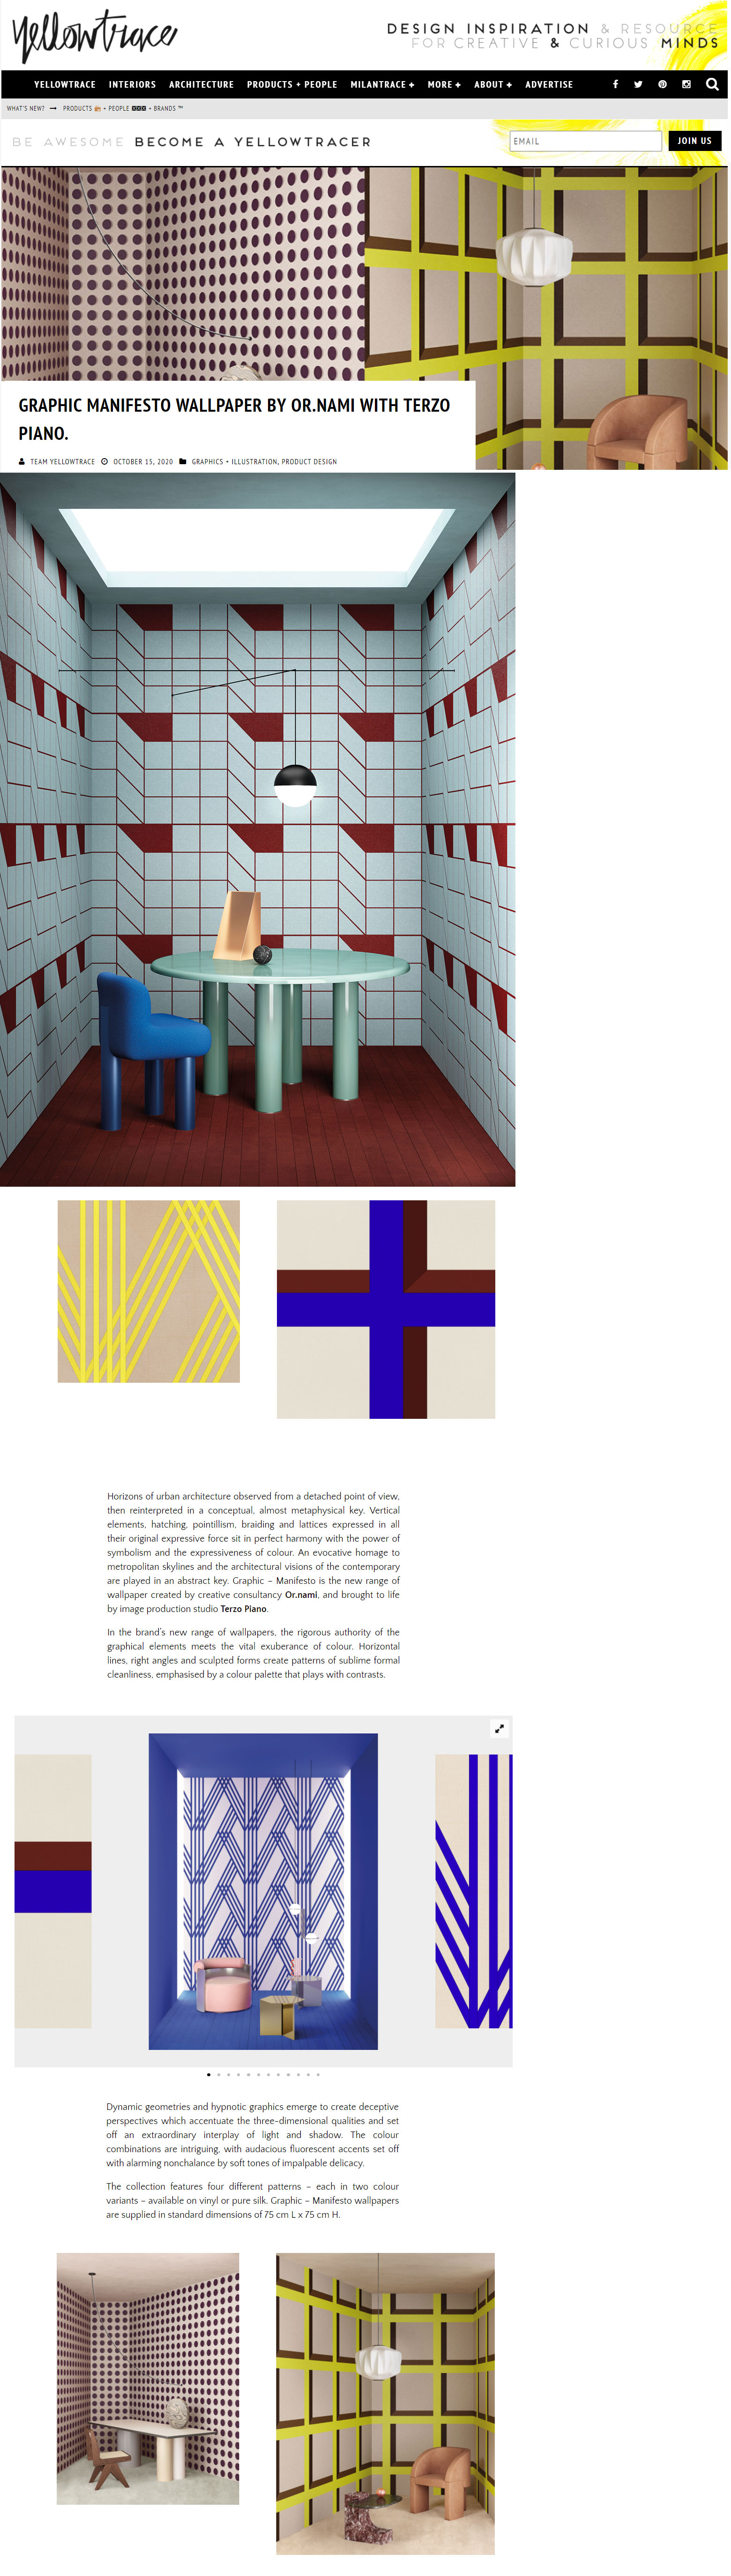 GRAPHIC MANIFESTO FEATURED ON YELLOWTRACE